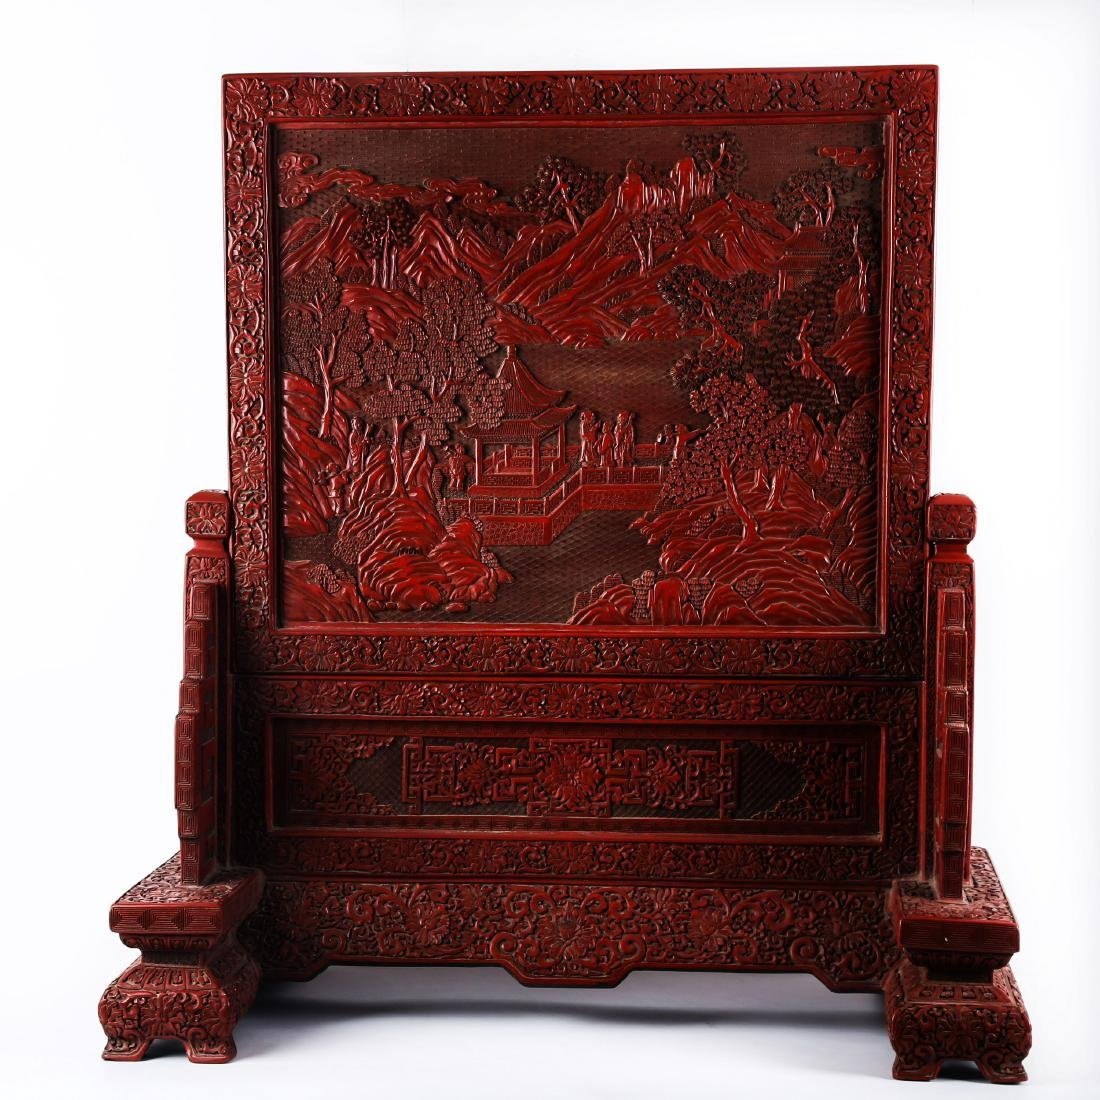 LARGE CHINESE CINNABAR LACQUER TABLE SCREEN